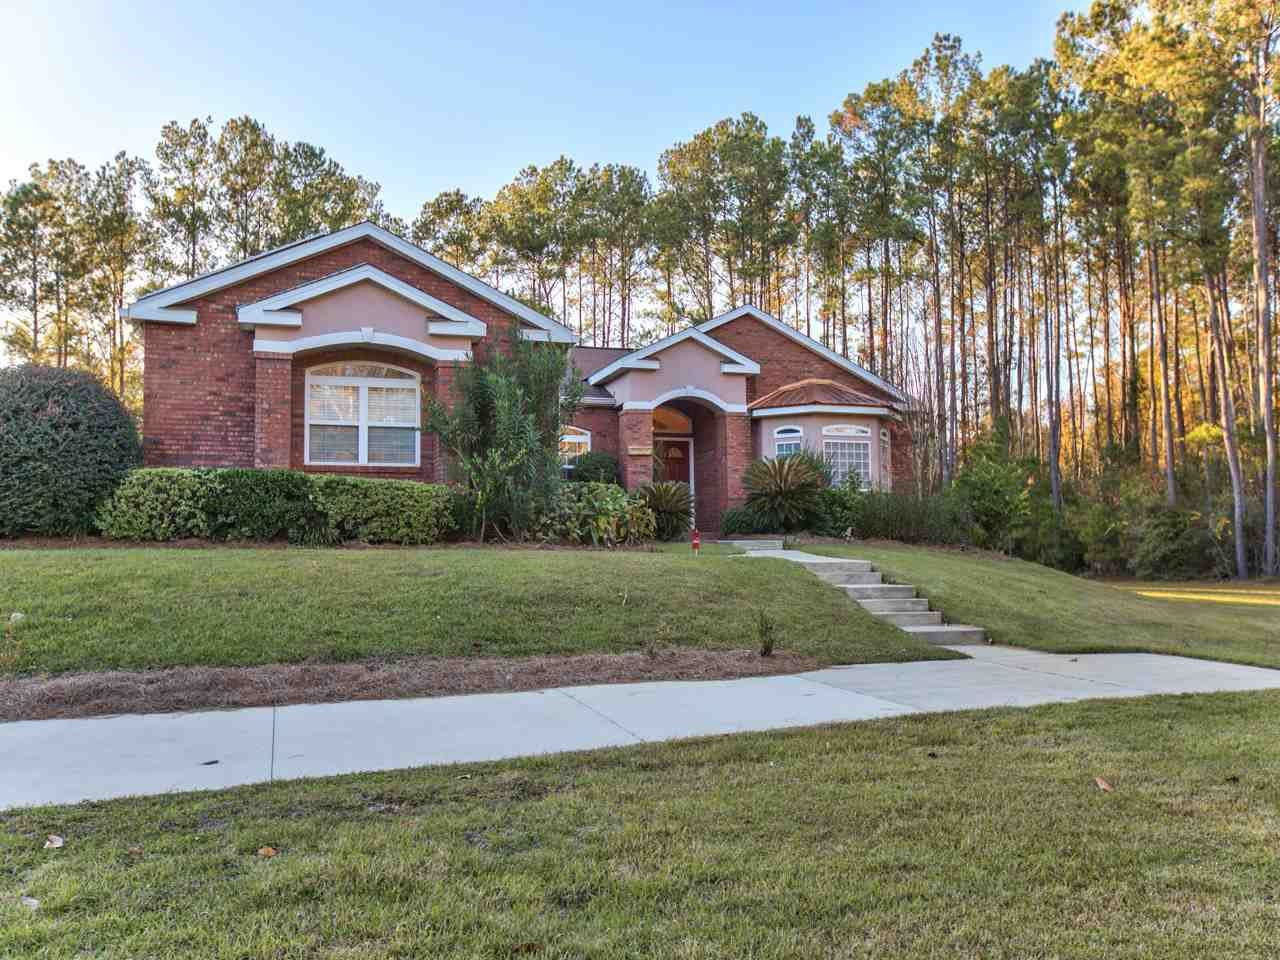 Photo for 12998 Capitola Road, TALLAHASSEE, FL 32317 (MLS # 313371)